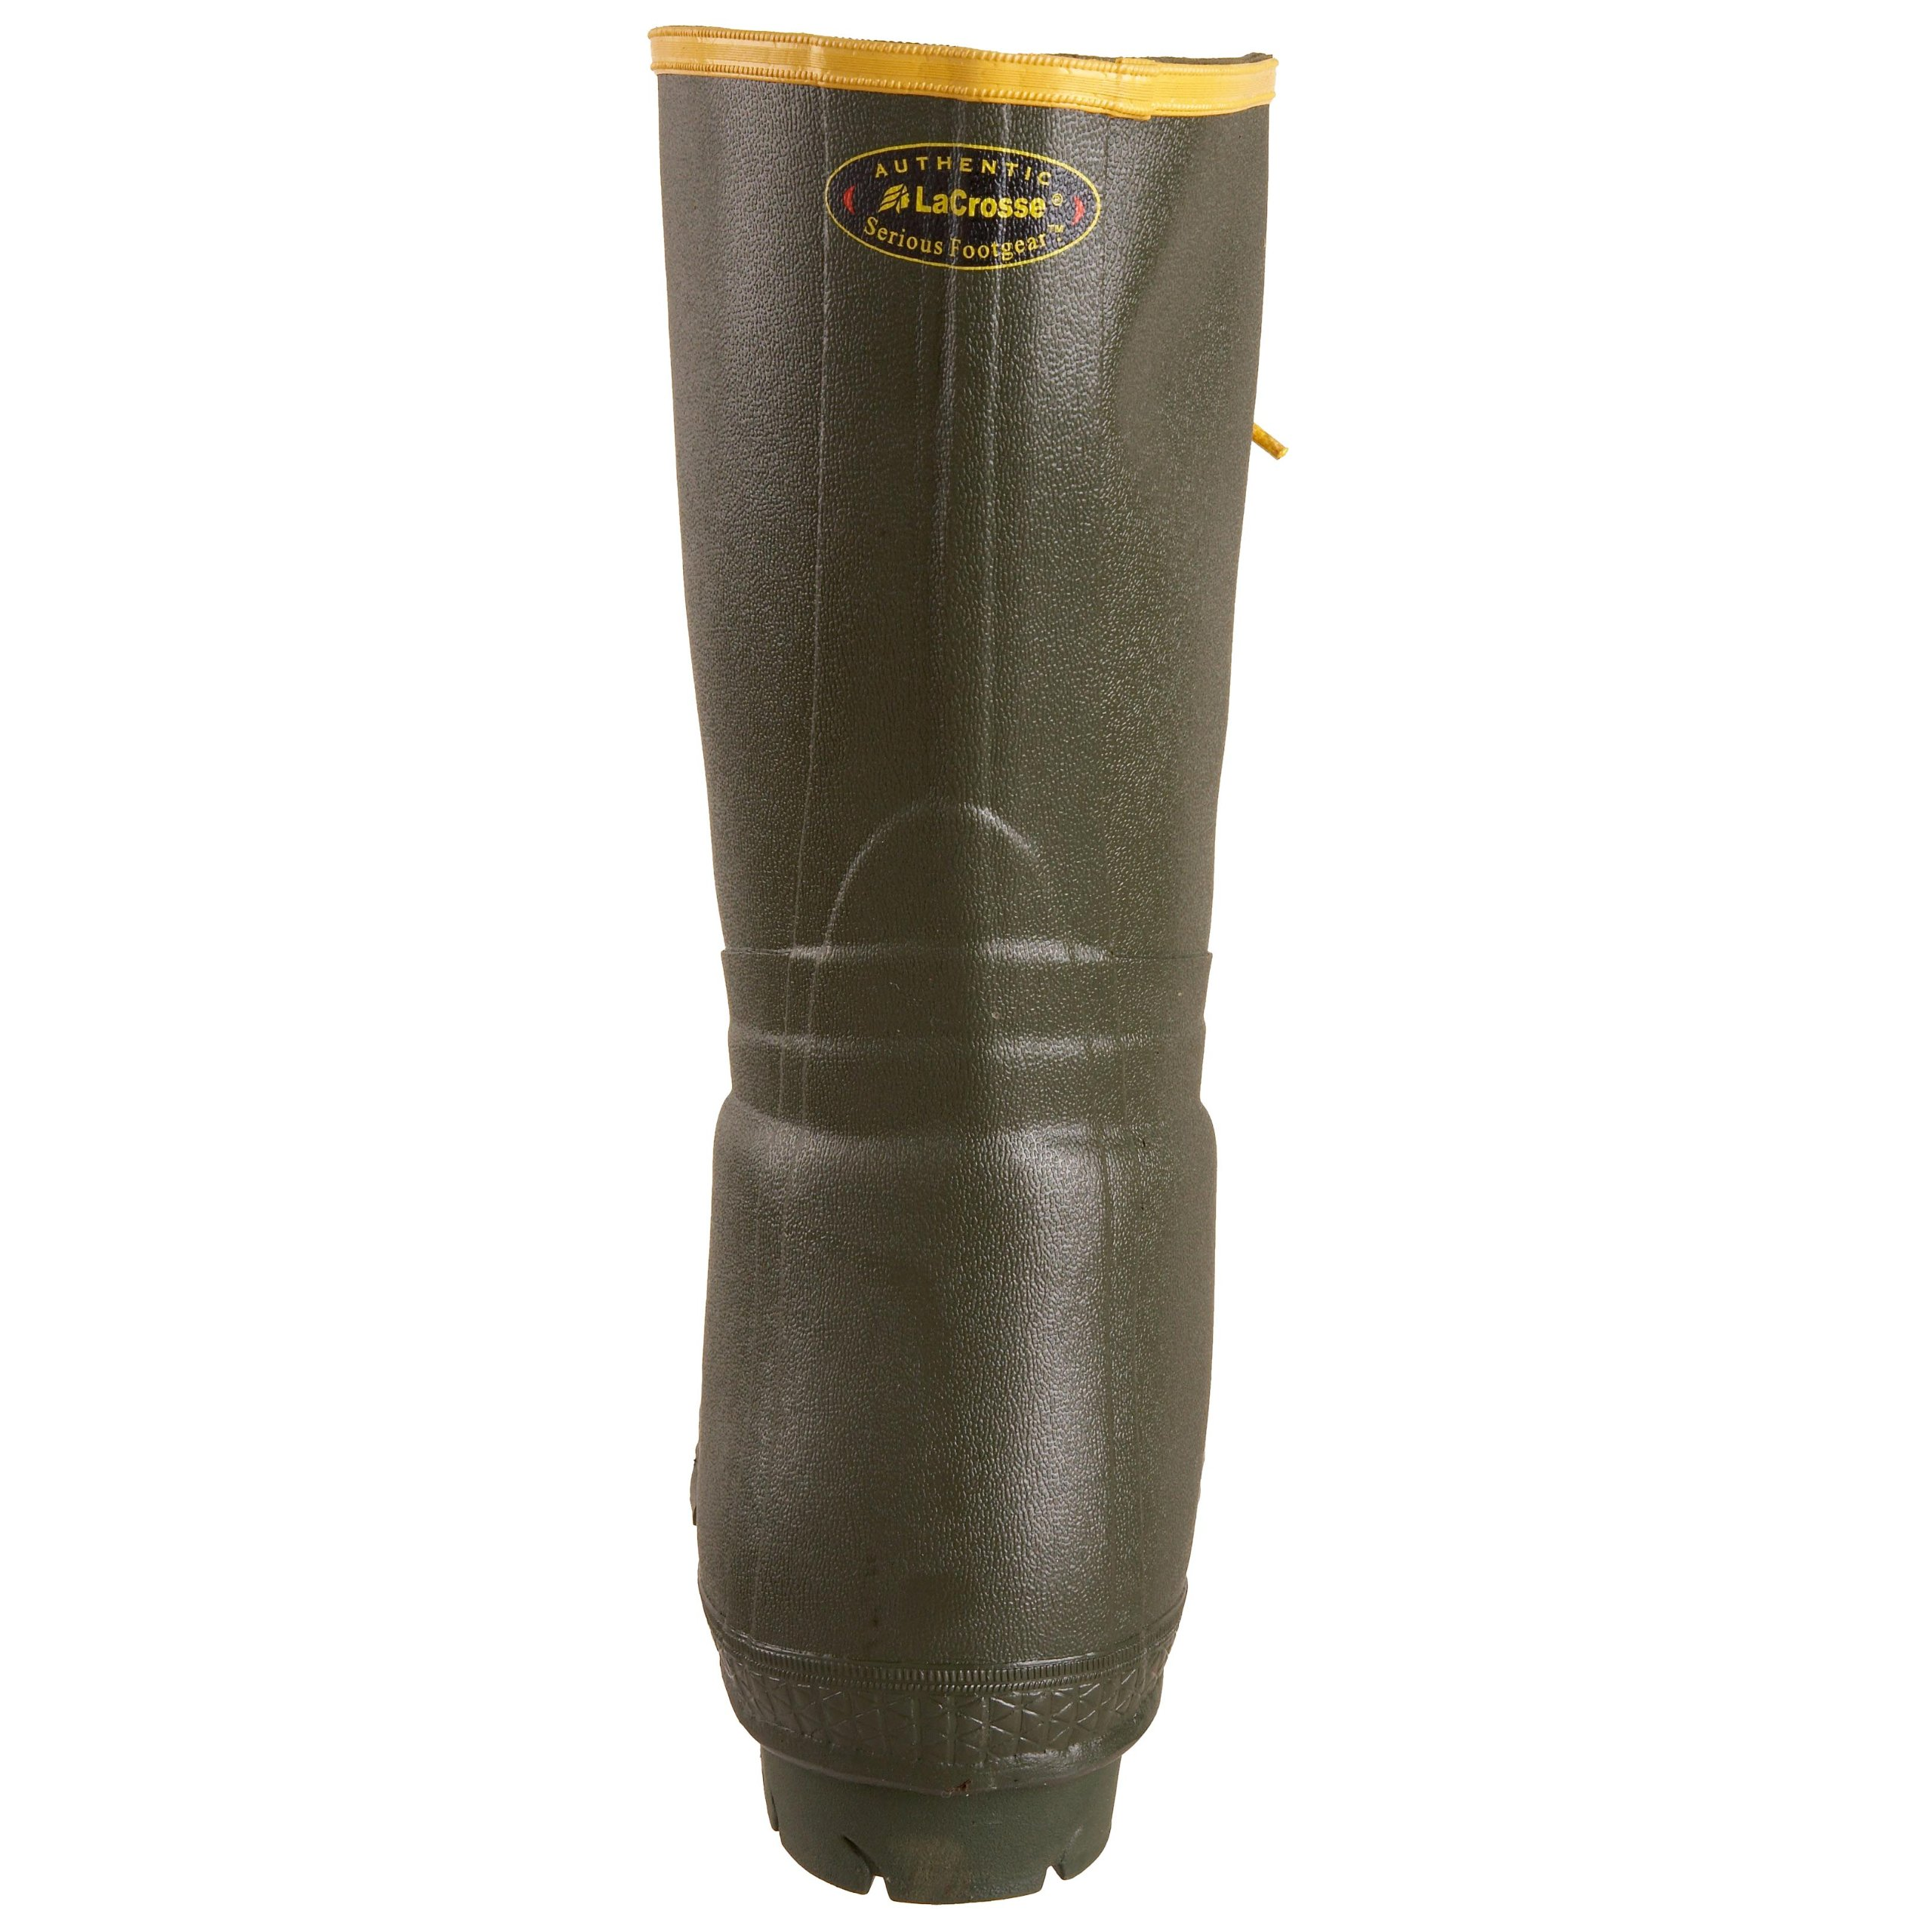 LaCrosse Men's 12'' Insulated Pac Mid-Calf Boot,Olive Drab Green,9 M US by Lacrosse (Image #2)